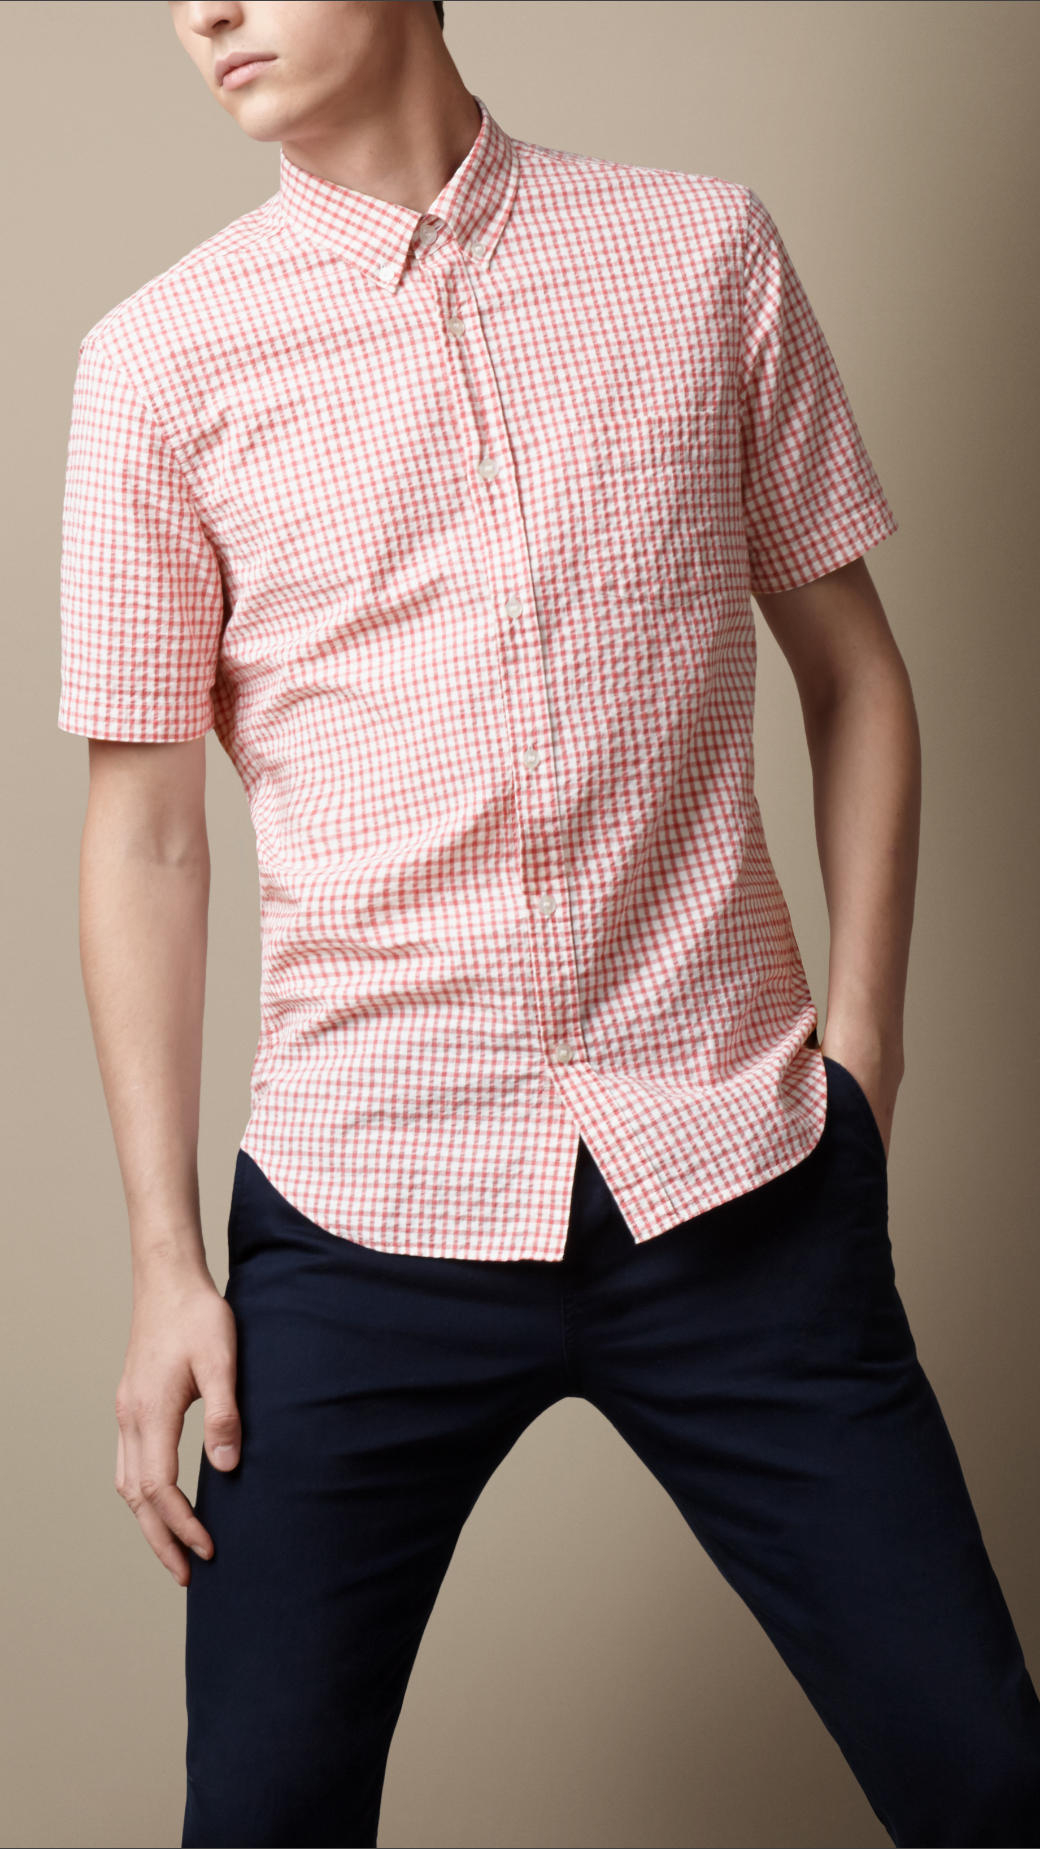 Lyst - Burberry Check Cotton Seersucker Shirt in Pink for Men 9eba11142395